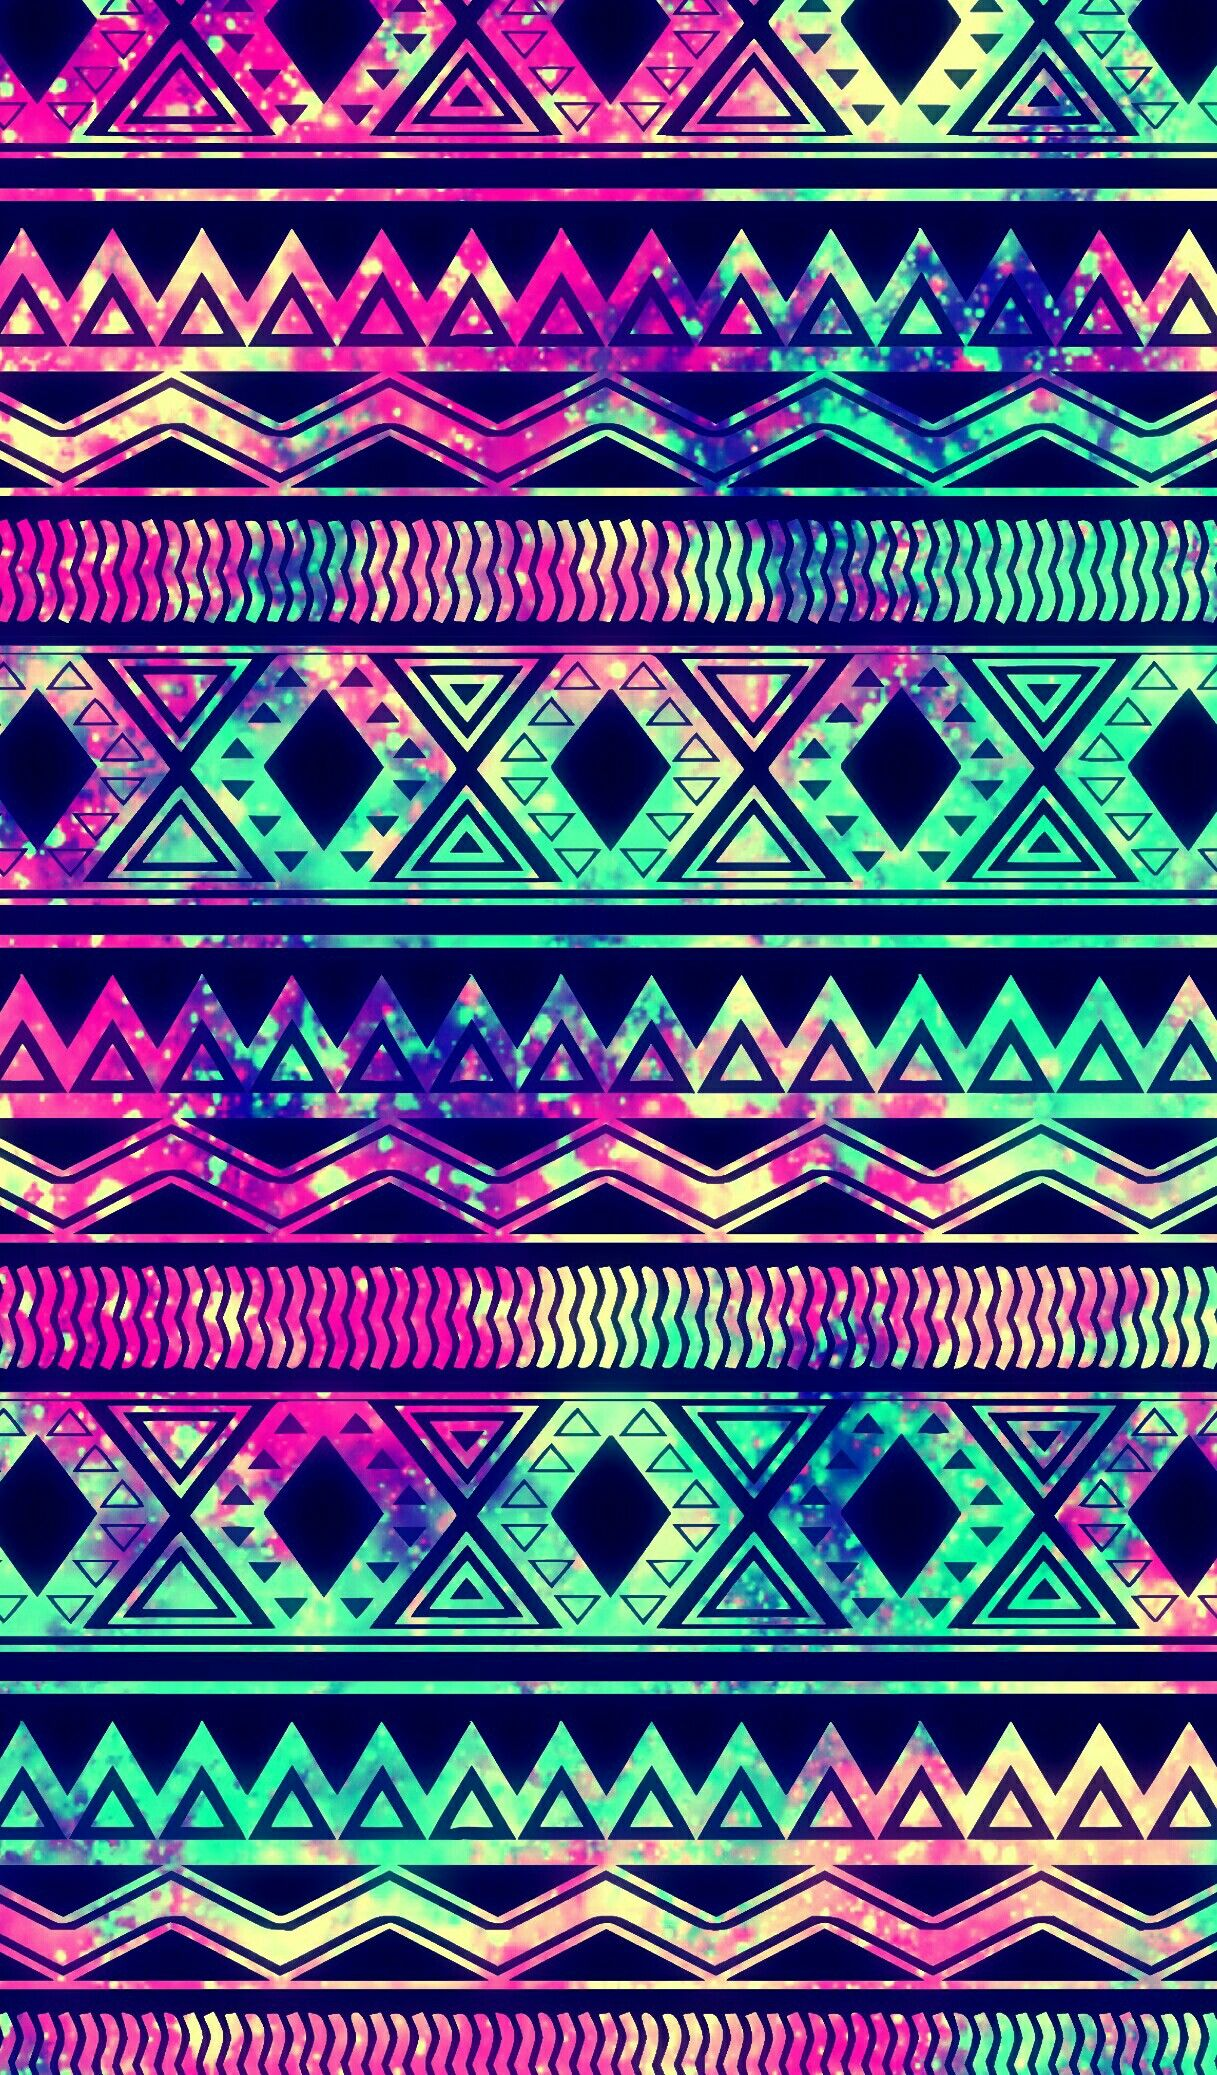 Tribal Galaxy Wallpaper I Created For The App Cocoppa Backgrounds Jpg 1217x2075 Aztec